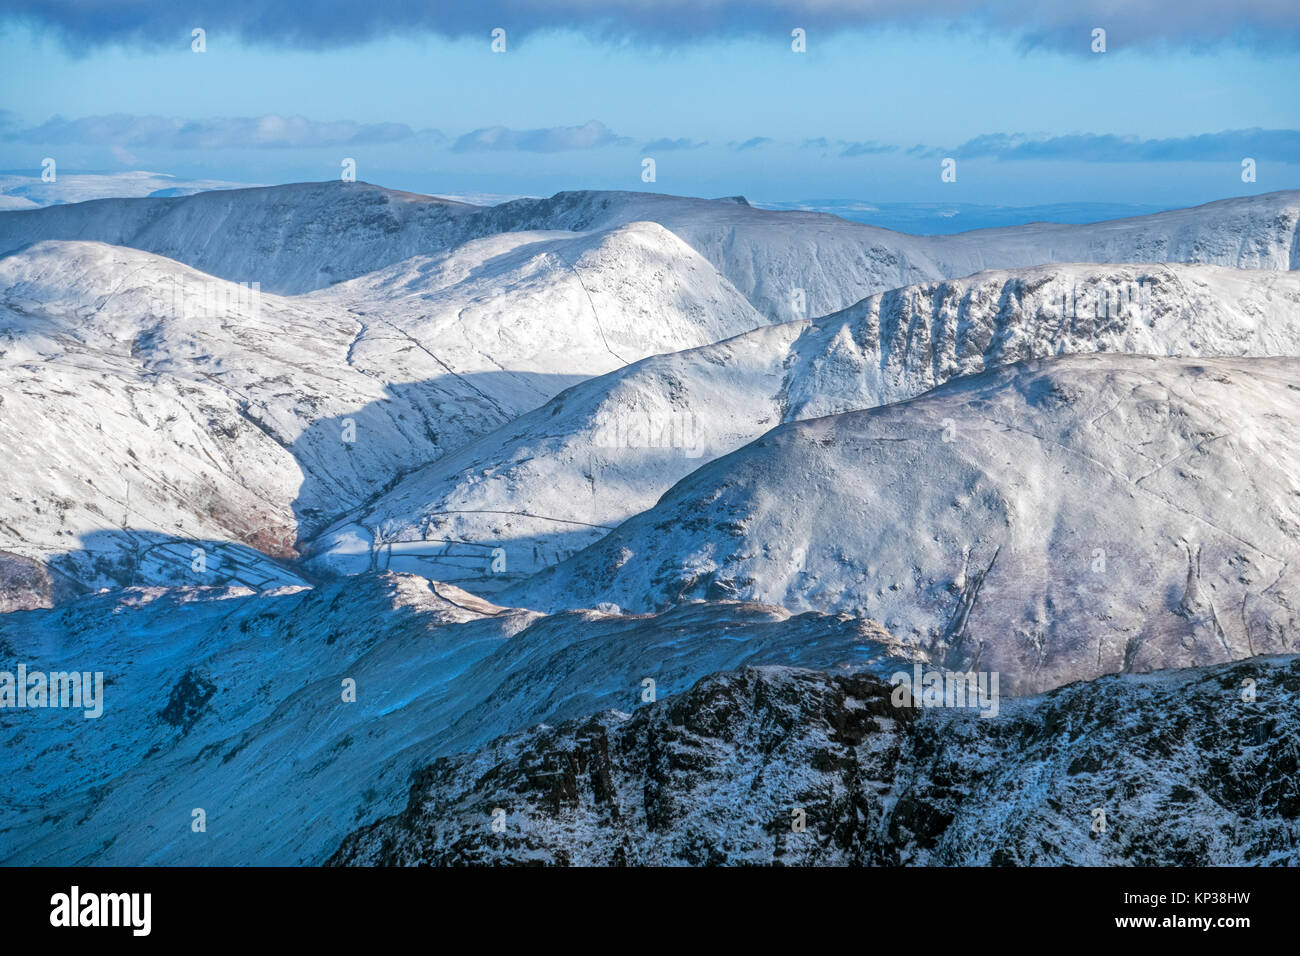 The Eastern Fells of the Lake District - The Knott, High Raise, High Street,Grey Crag,Hartsop Dodd - in winter - Stock Image